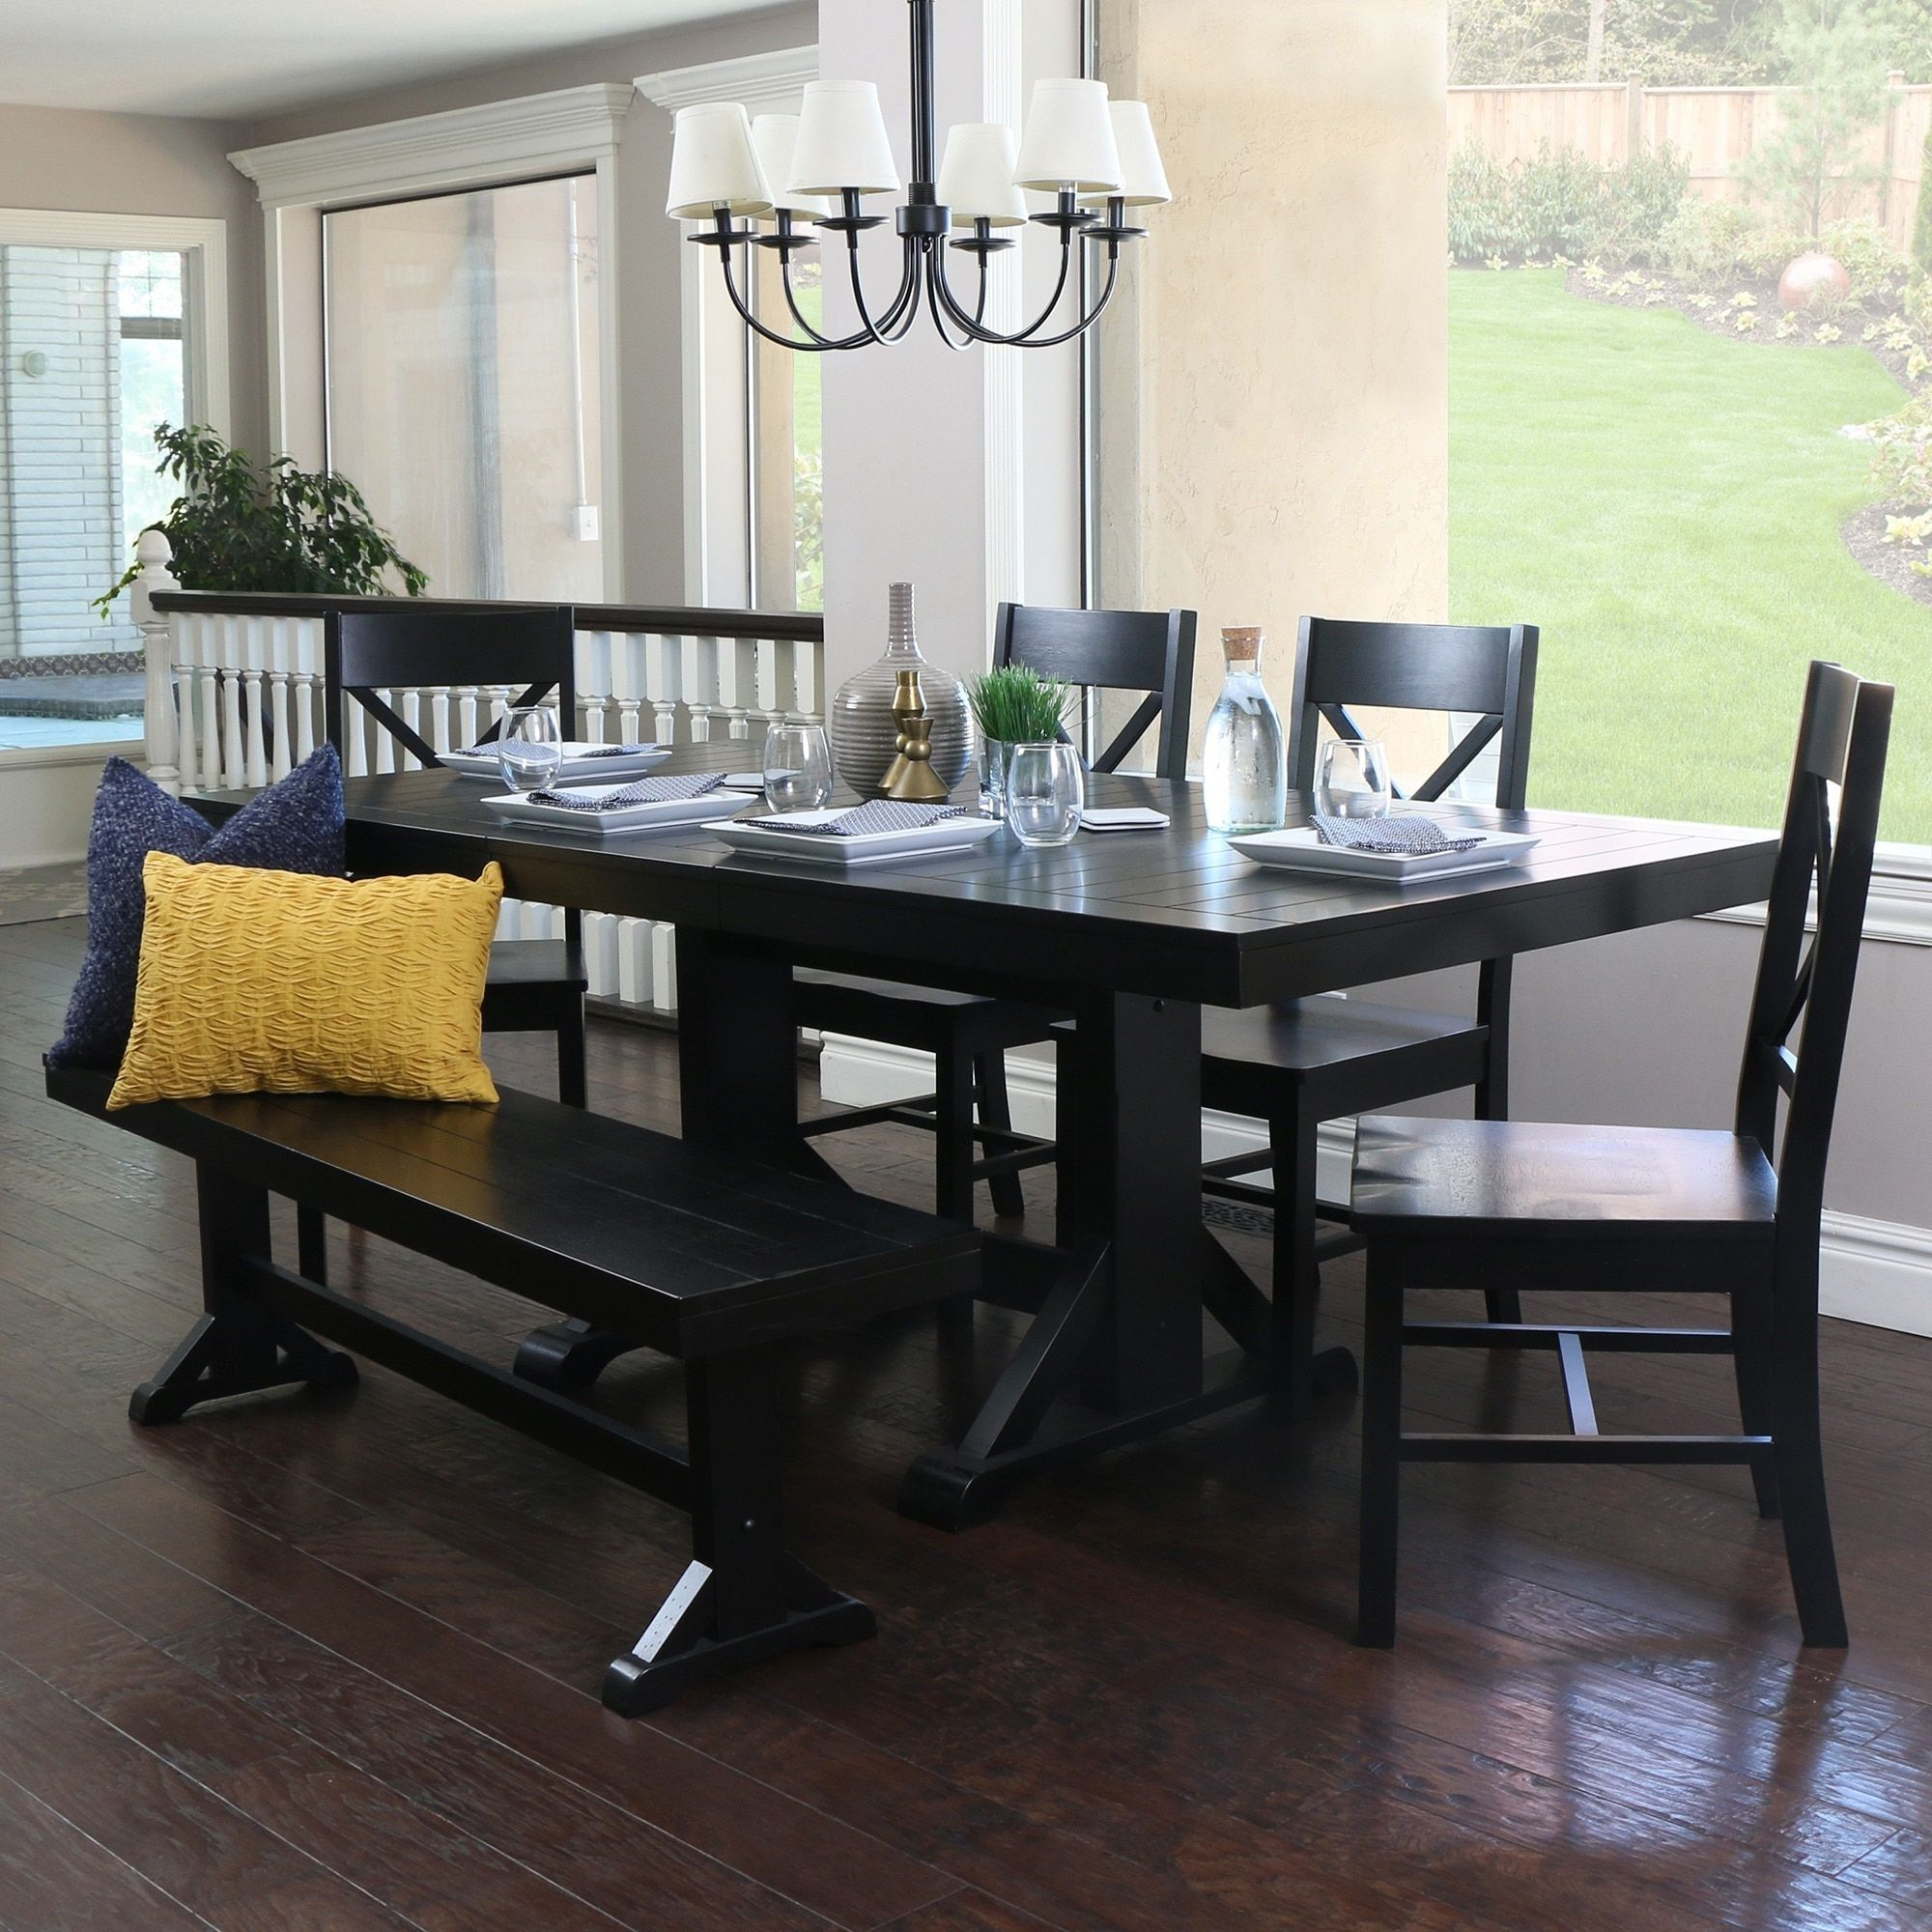 Most Recent Walker Edison Countryside Chic 6 Piece Antique Black Wood Regarding Antique Black Wood Kitchen Dining Tables (Gallery 5 of 30)